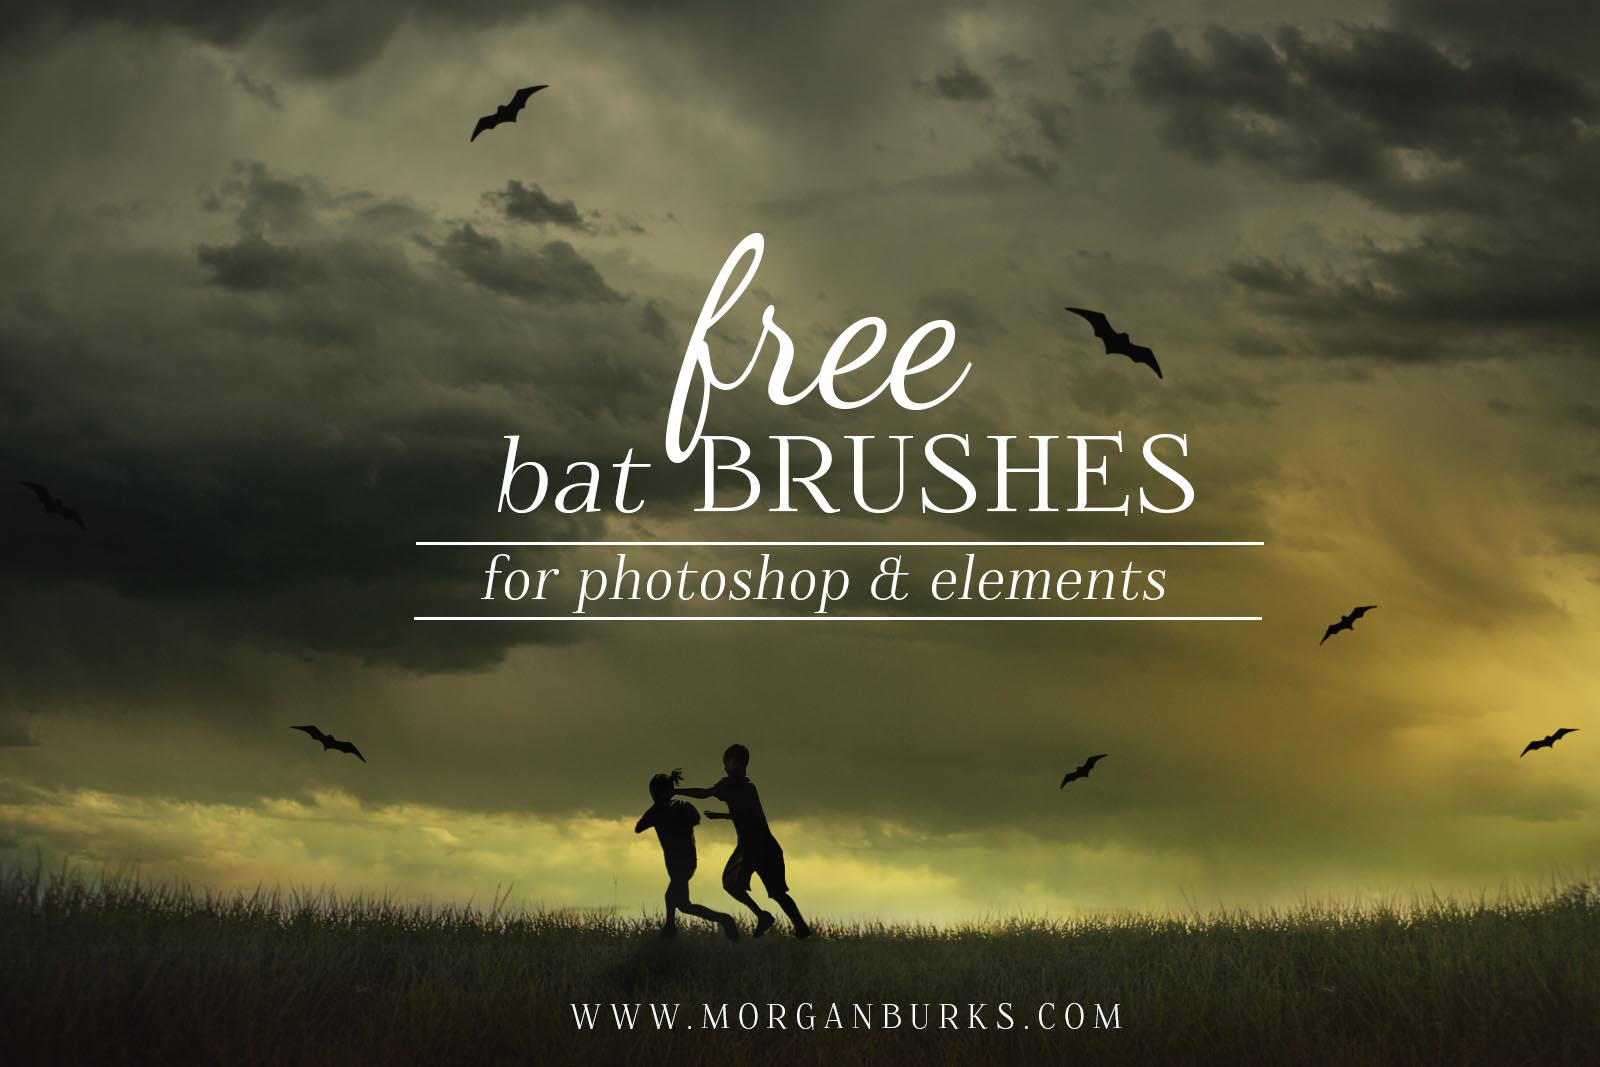 Add some halloween flair to your image with these free bat brushes for Photoshop and Elements.